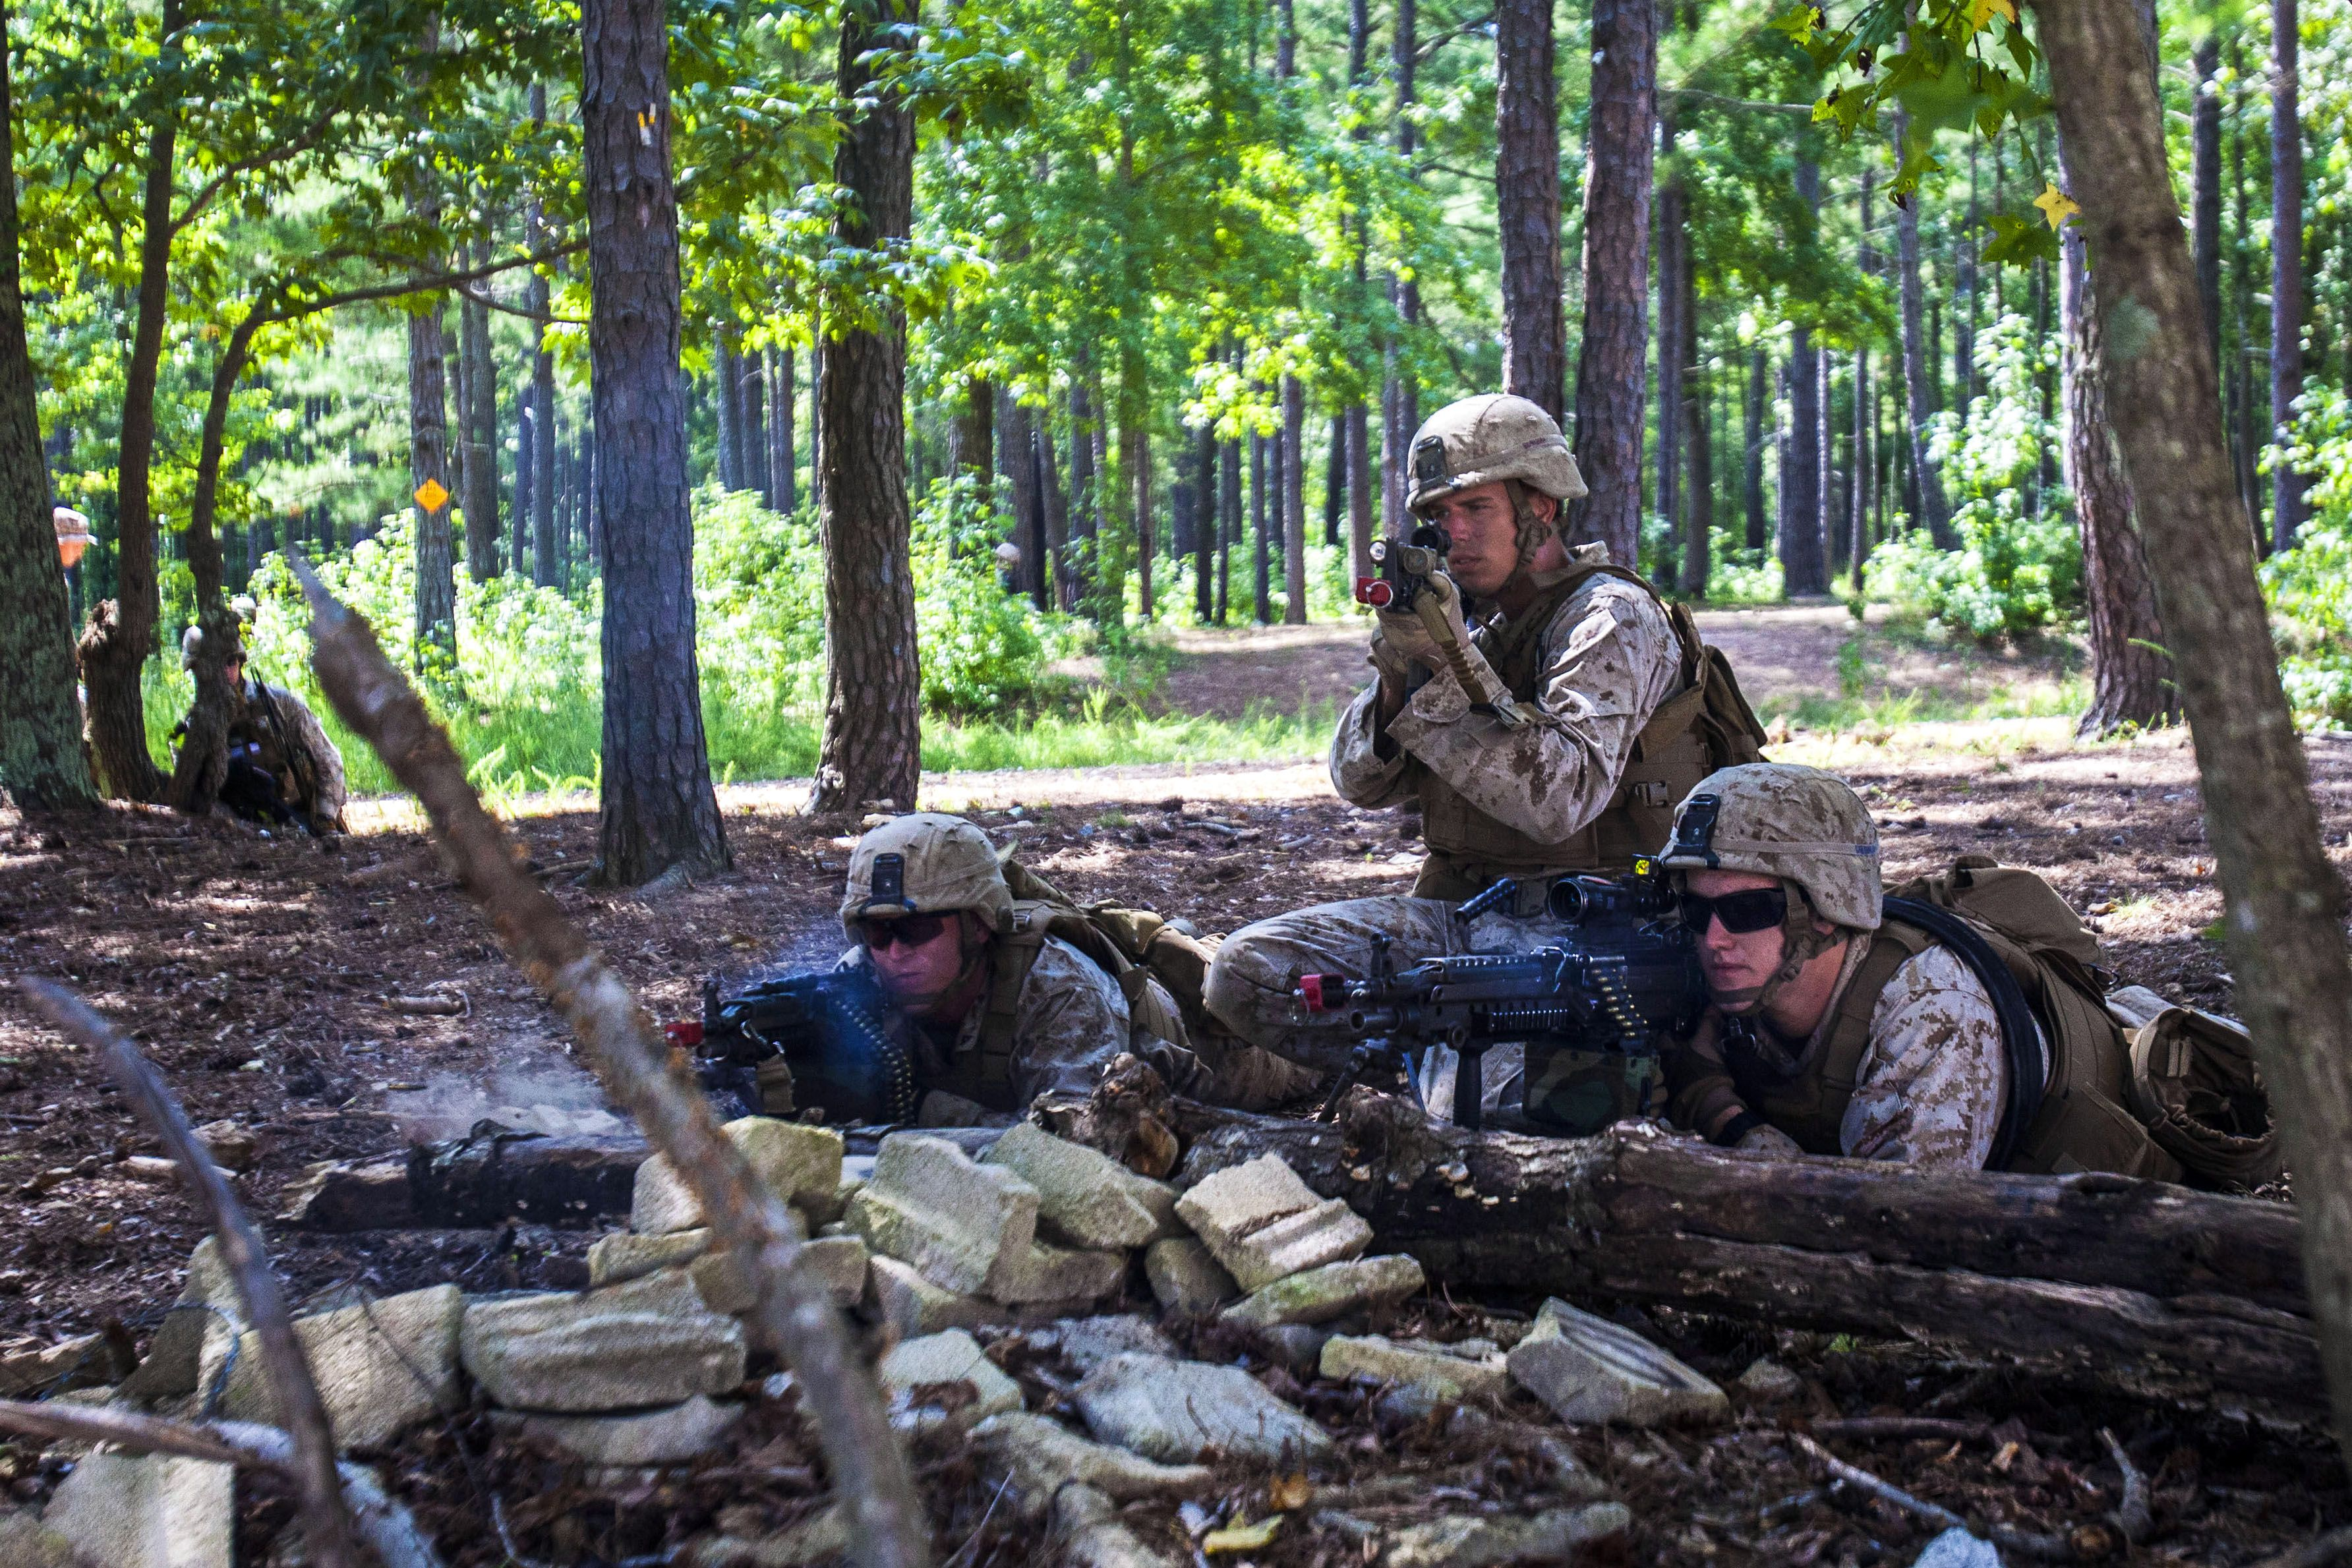 Marines provide cover fire as Marines carry a simulated casualty to medical aid while conducting a platoon-sized raid on a simulated town during urban tactics training on Fort Pickett, Va., Aug. 31, 2013. U.S. Marine Corps photo by Sgt. Austin Hazard